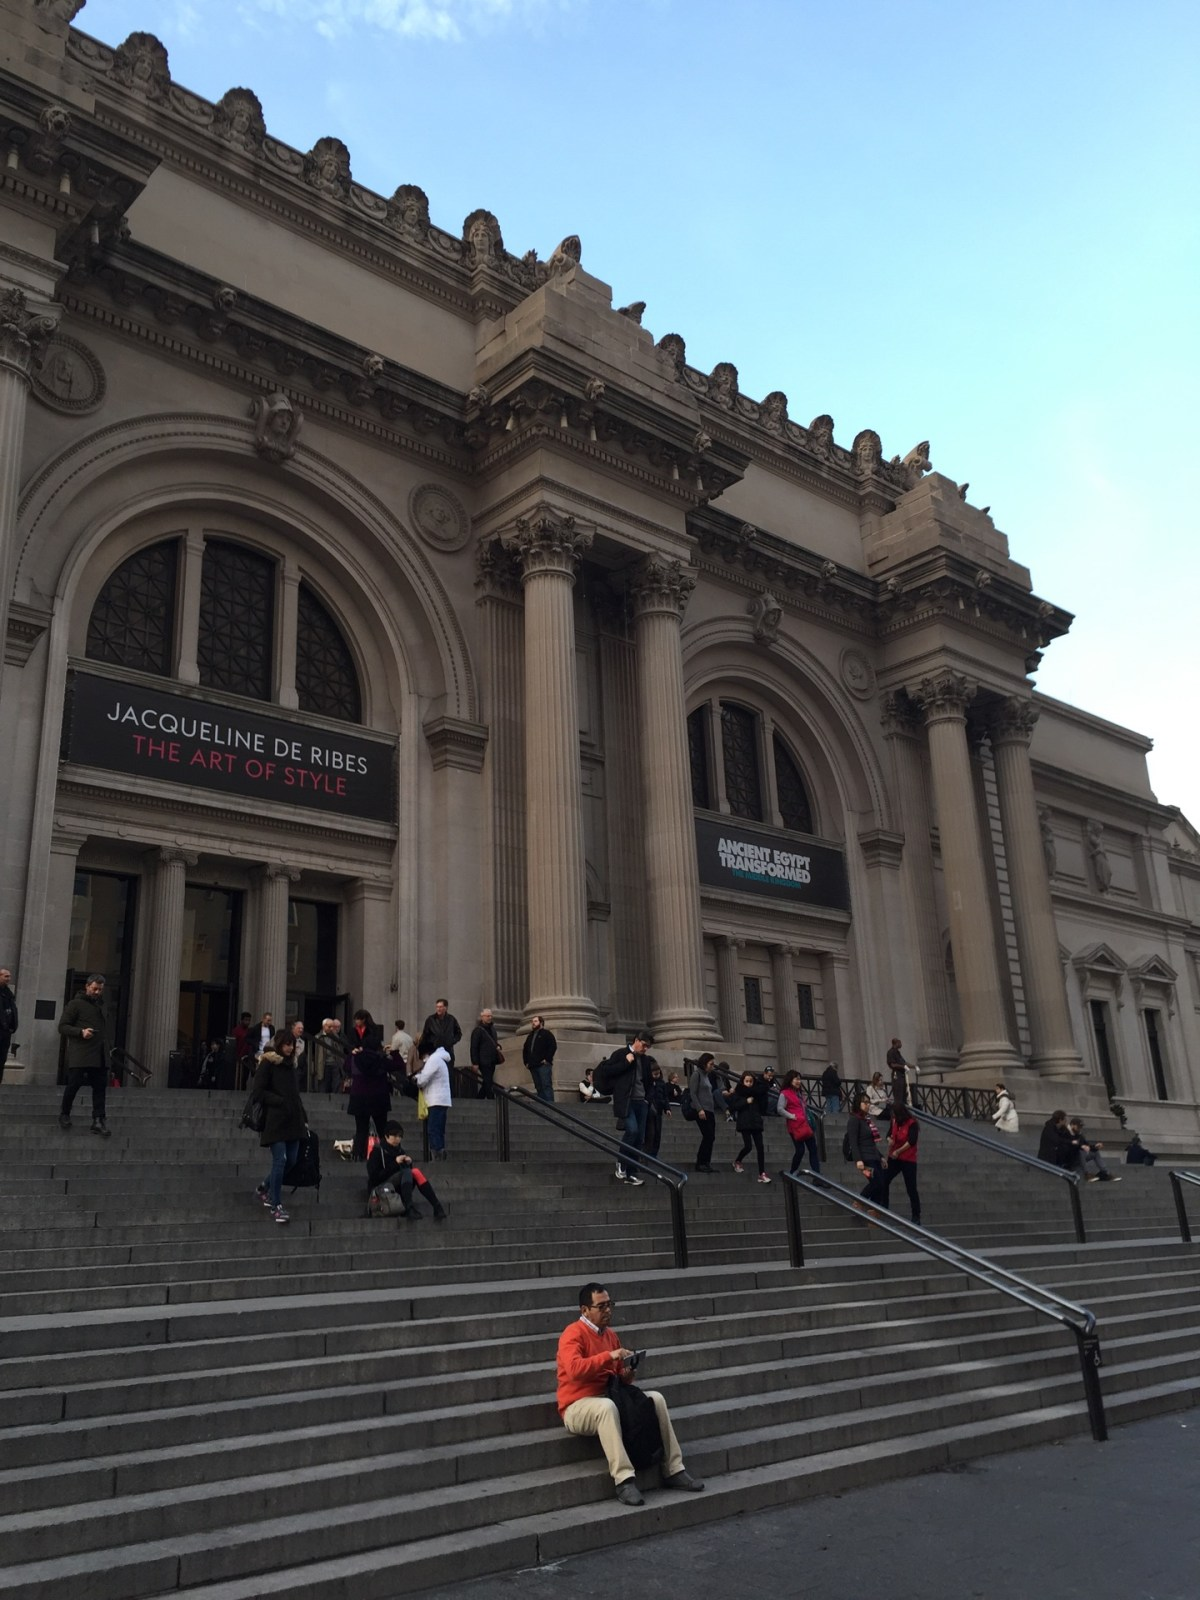 Checked in at The Metropolitan Museum of Art